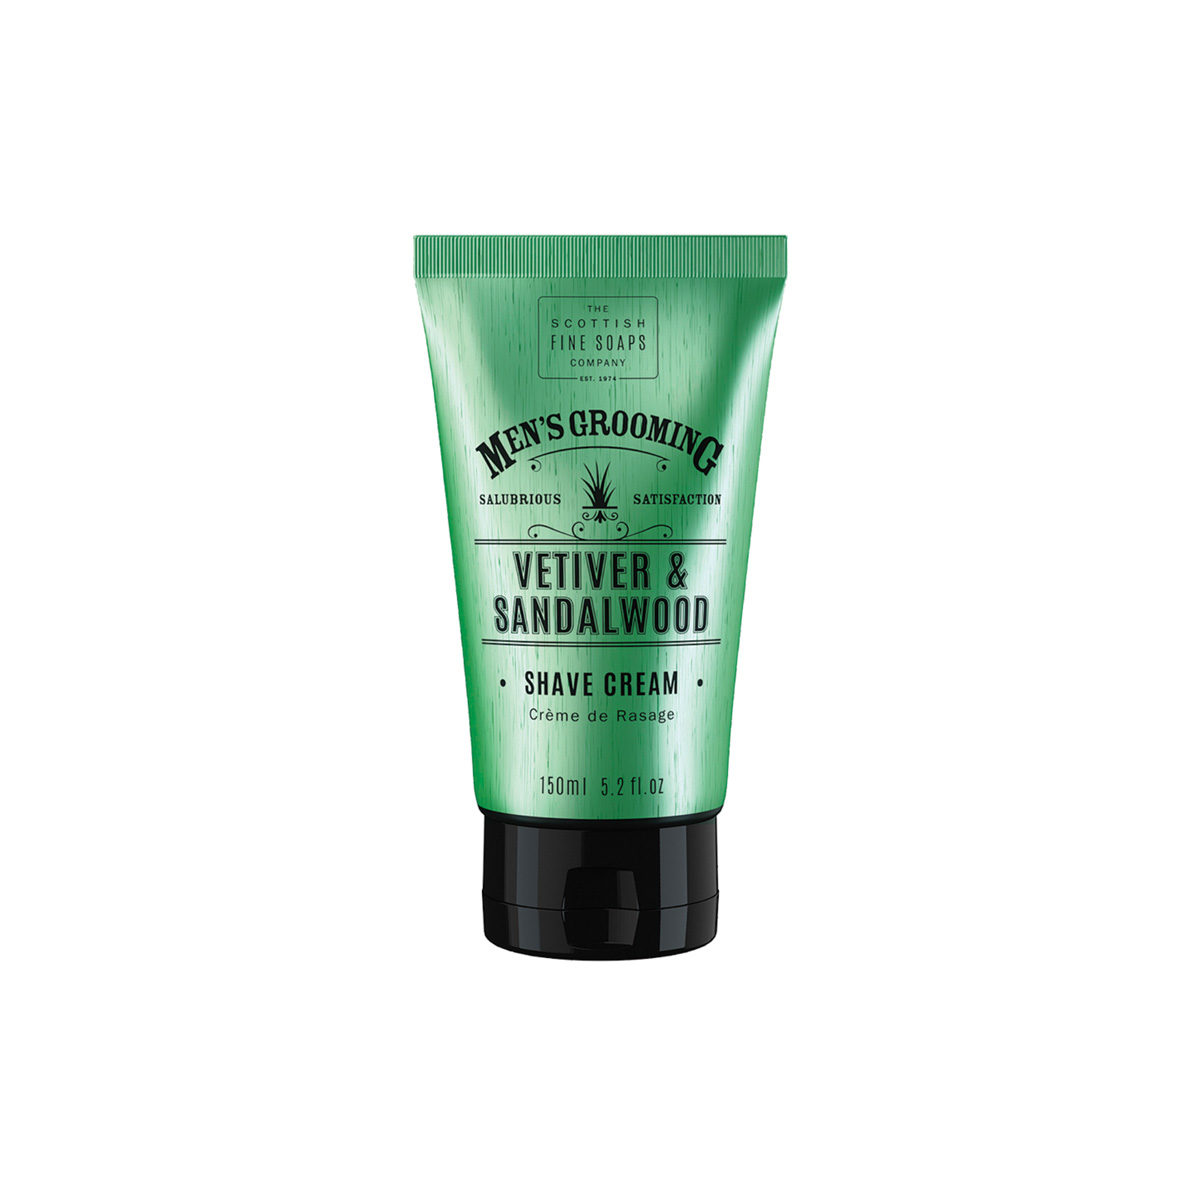 Vetiver & Sandalwood Shave Cream